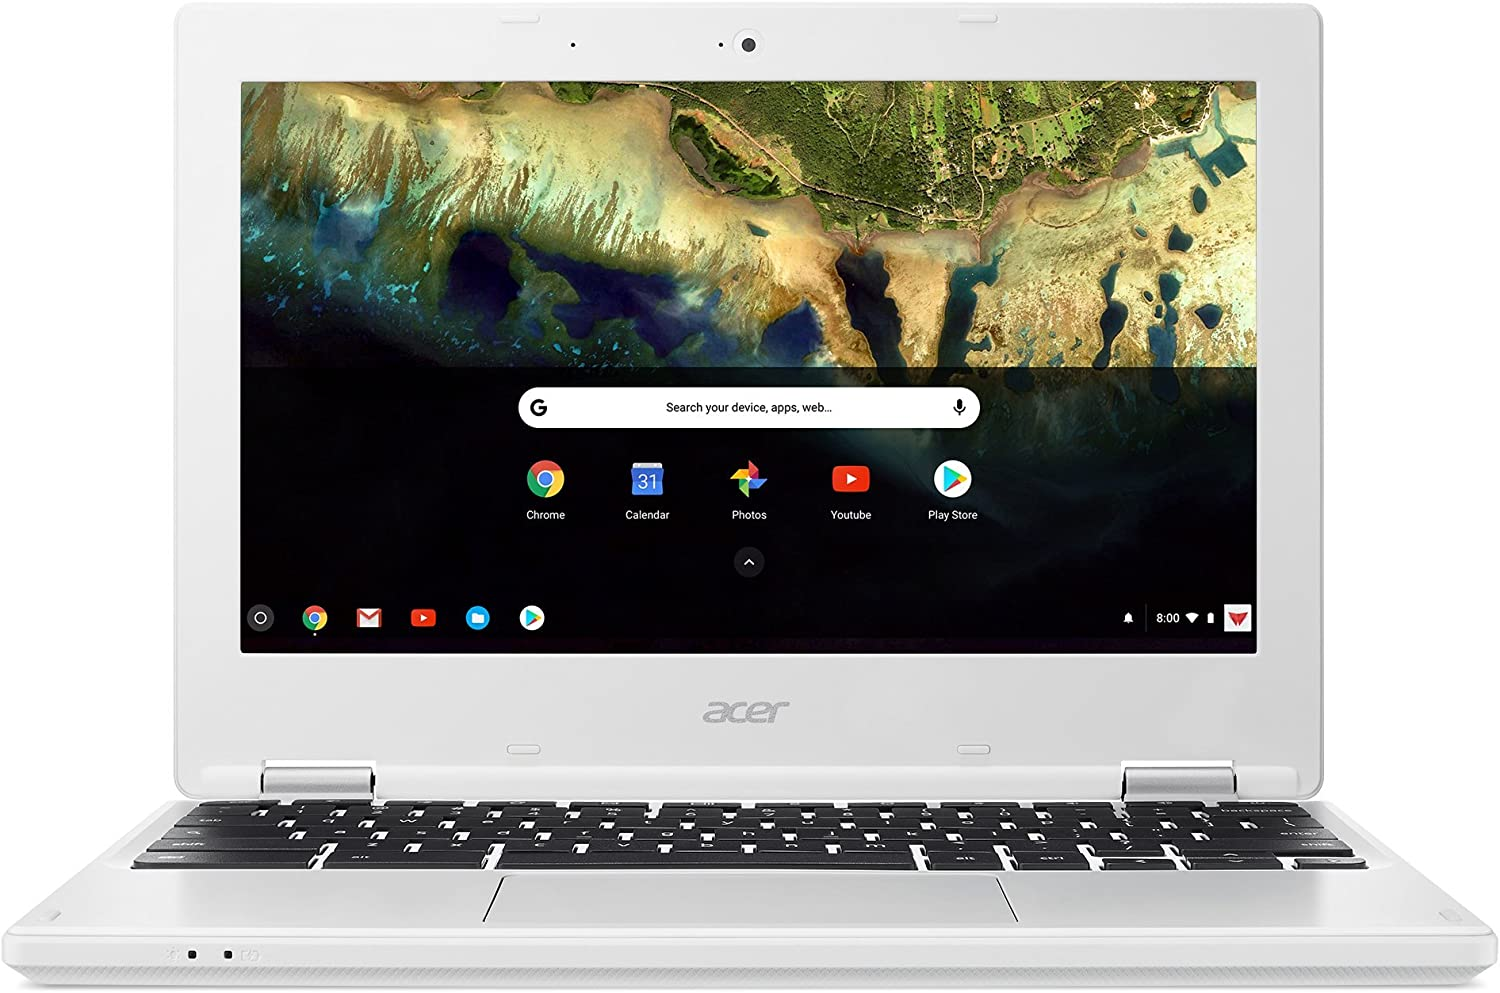 2018 Newest Acer 11.6in HD IPS Lightweight Chromebook-Intel Celeron Dual-Core N3060 Up to 2.48 GHz Processor, 4GB RAM, 16GB SSD, Intel HD Graphics, HDMI, Chrome OS (Renewed)